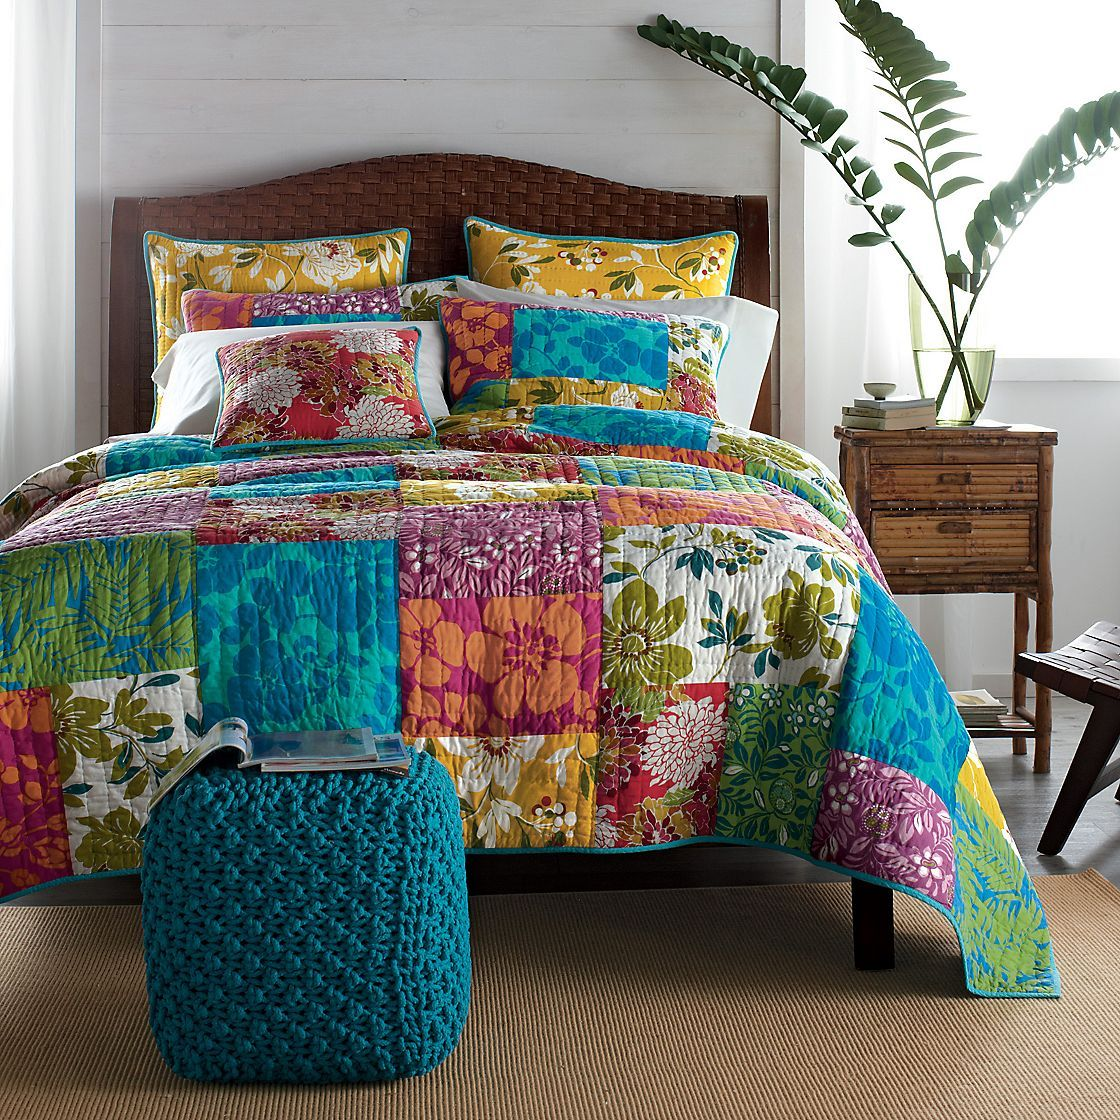 Patchwork bed sheets patterns - Rio Quilt The Liveliest Way To Wake Up Your Bed For The Summer Months Quilt Beddingcomforterpatchwork